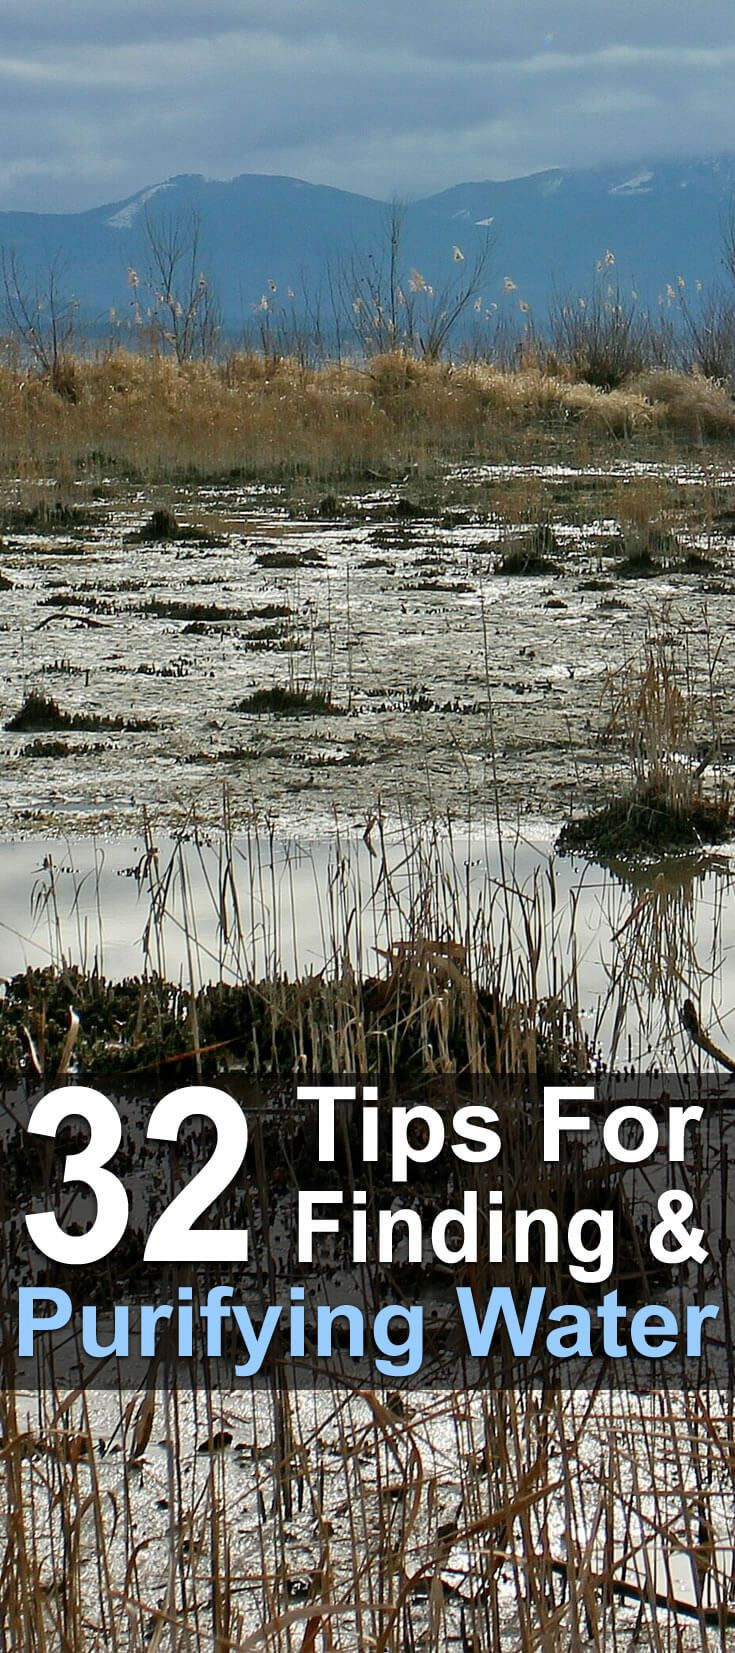 In this article, Deer Hunting Field describes 18 ways to find water in the wilderness and 14 ways to purify it. There are pictures, lists, videos, and more.